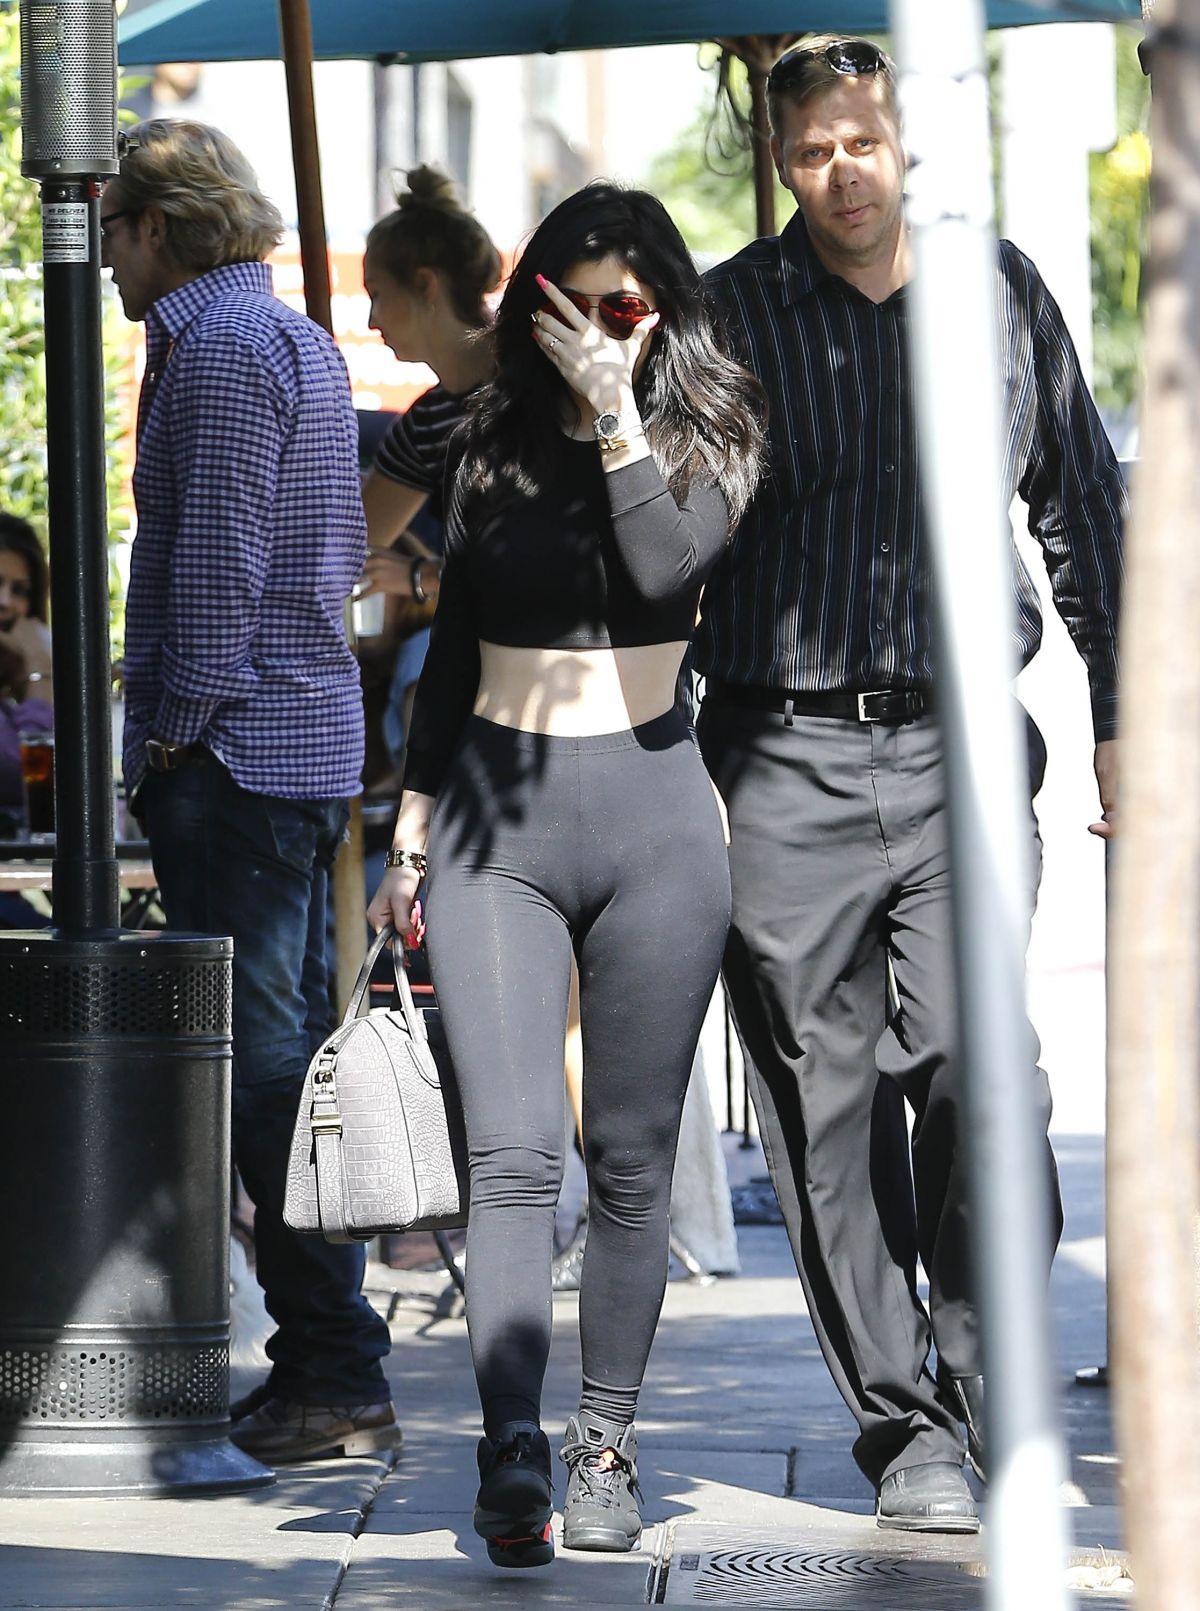 KYLIE JENNER at Urth Caffe in West Hollywood 05/28/2015